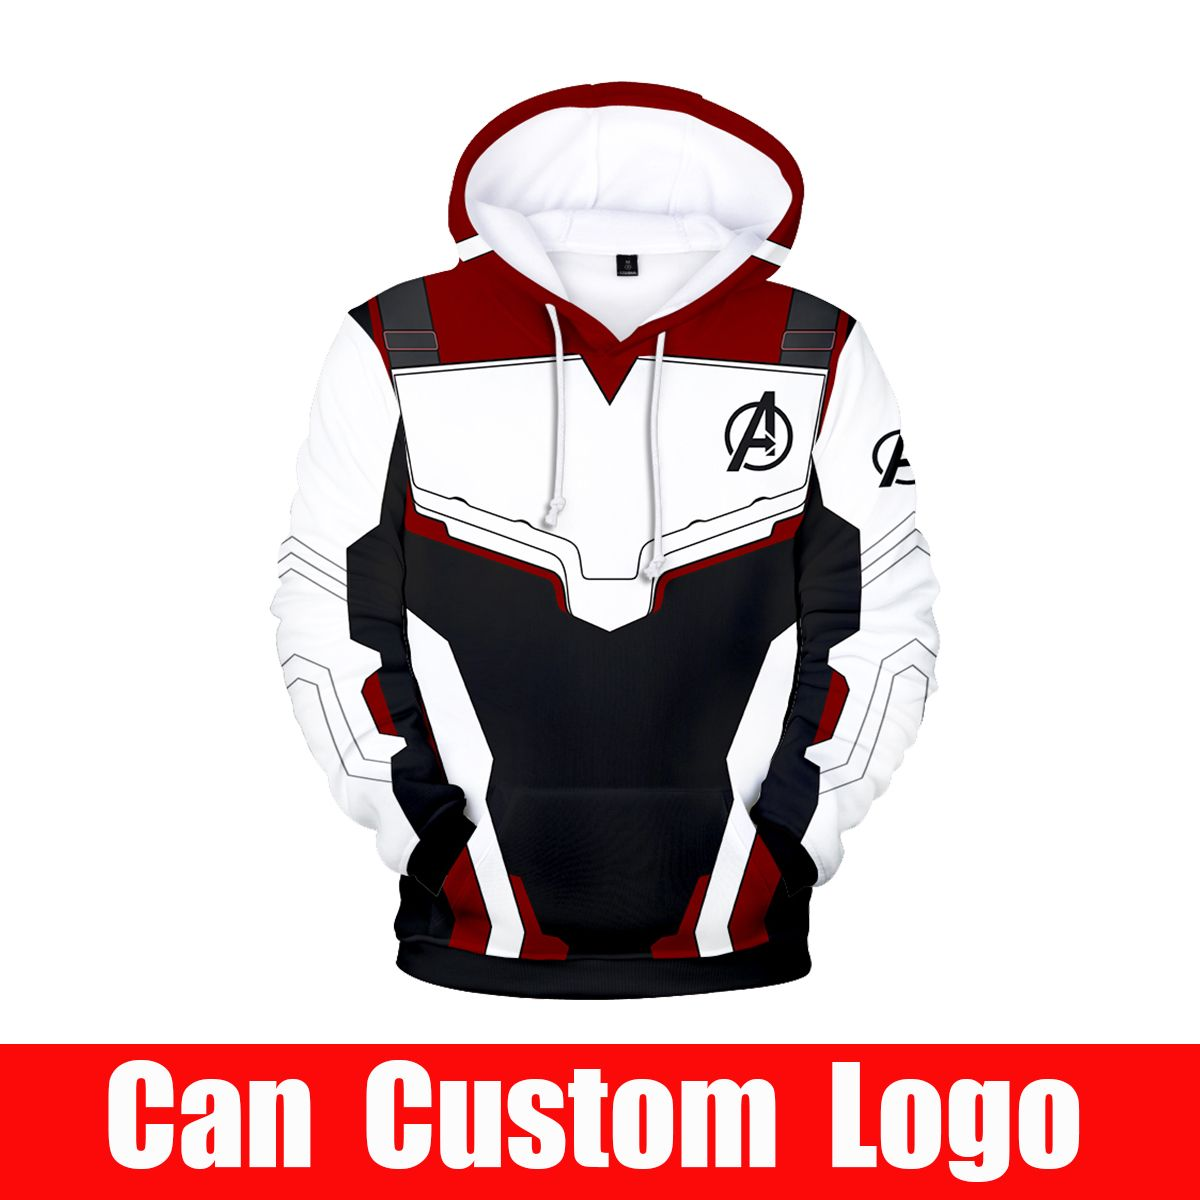 Avengers Endgame Quantum Realm Sweatshirt with hooded Advanced Tech Hoodie Cosplay halloween costume superhero Iron Man Hoodies